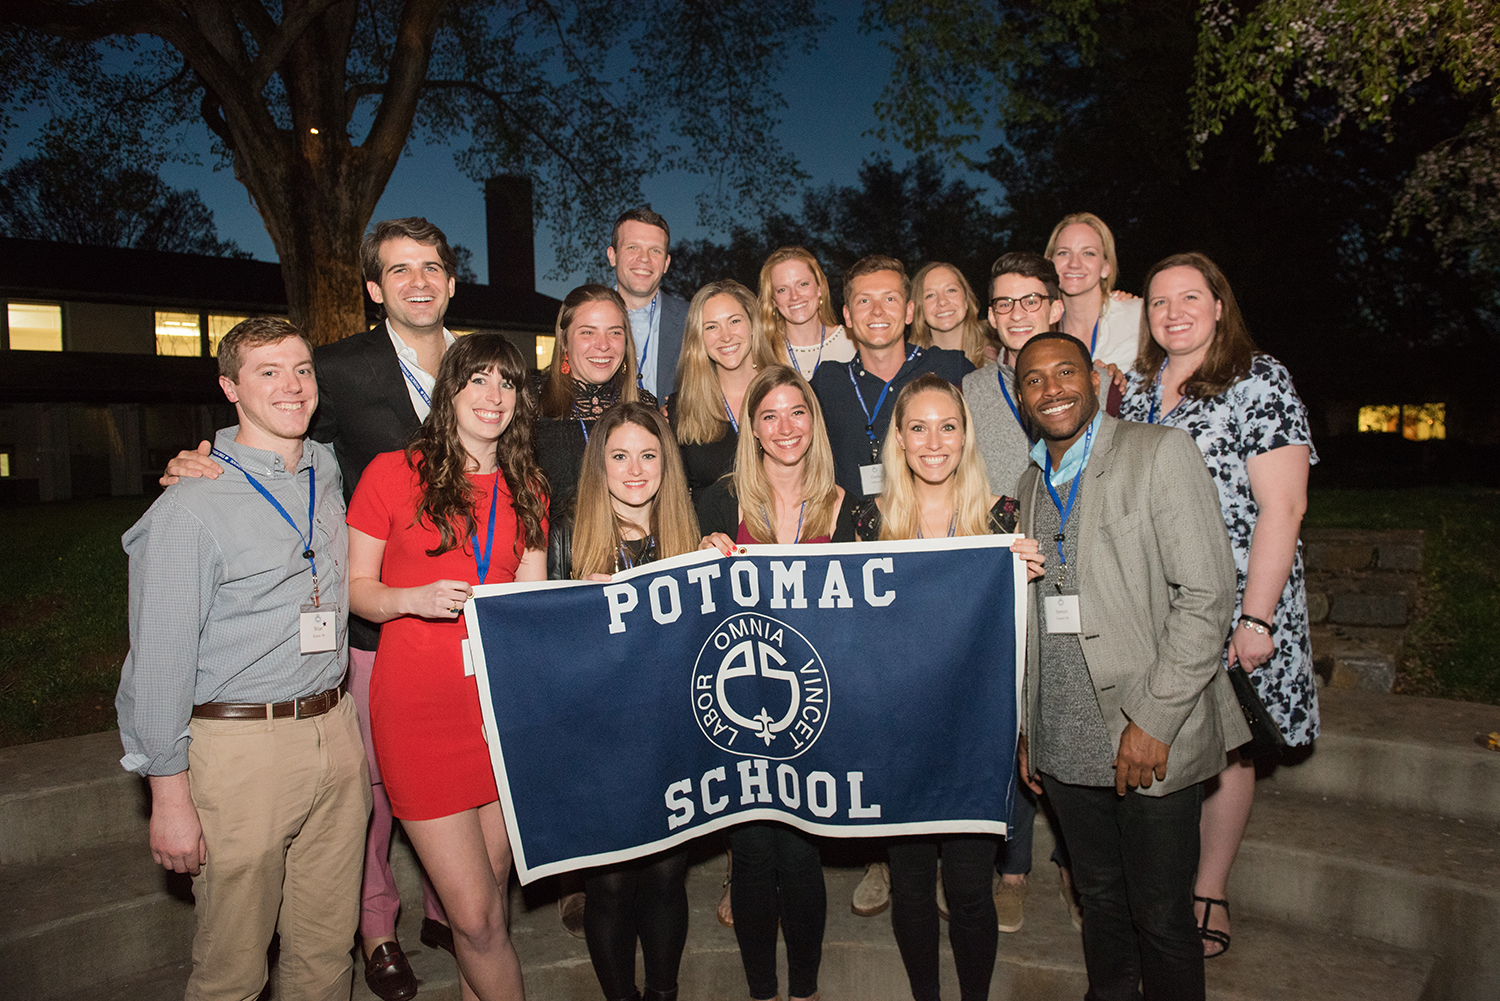 Photo Galleries - Potomac School